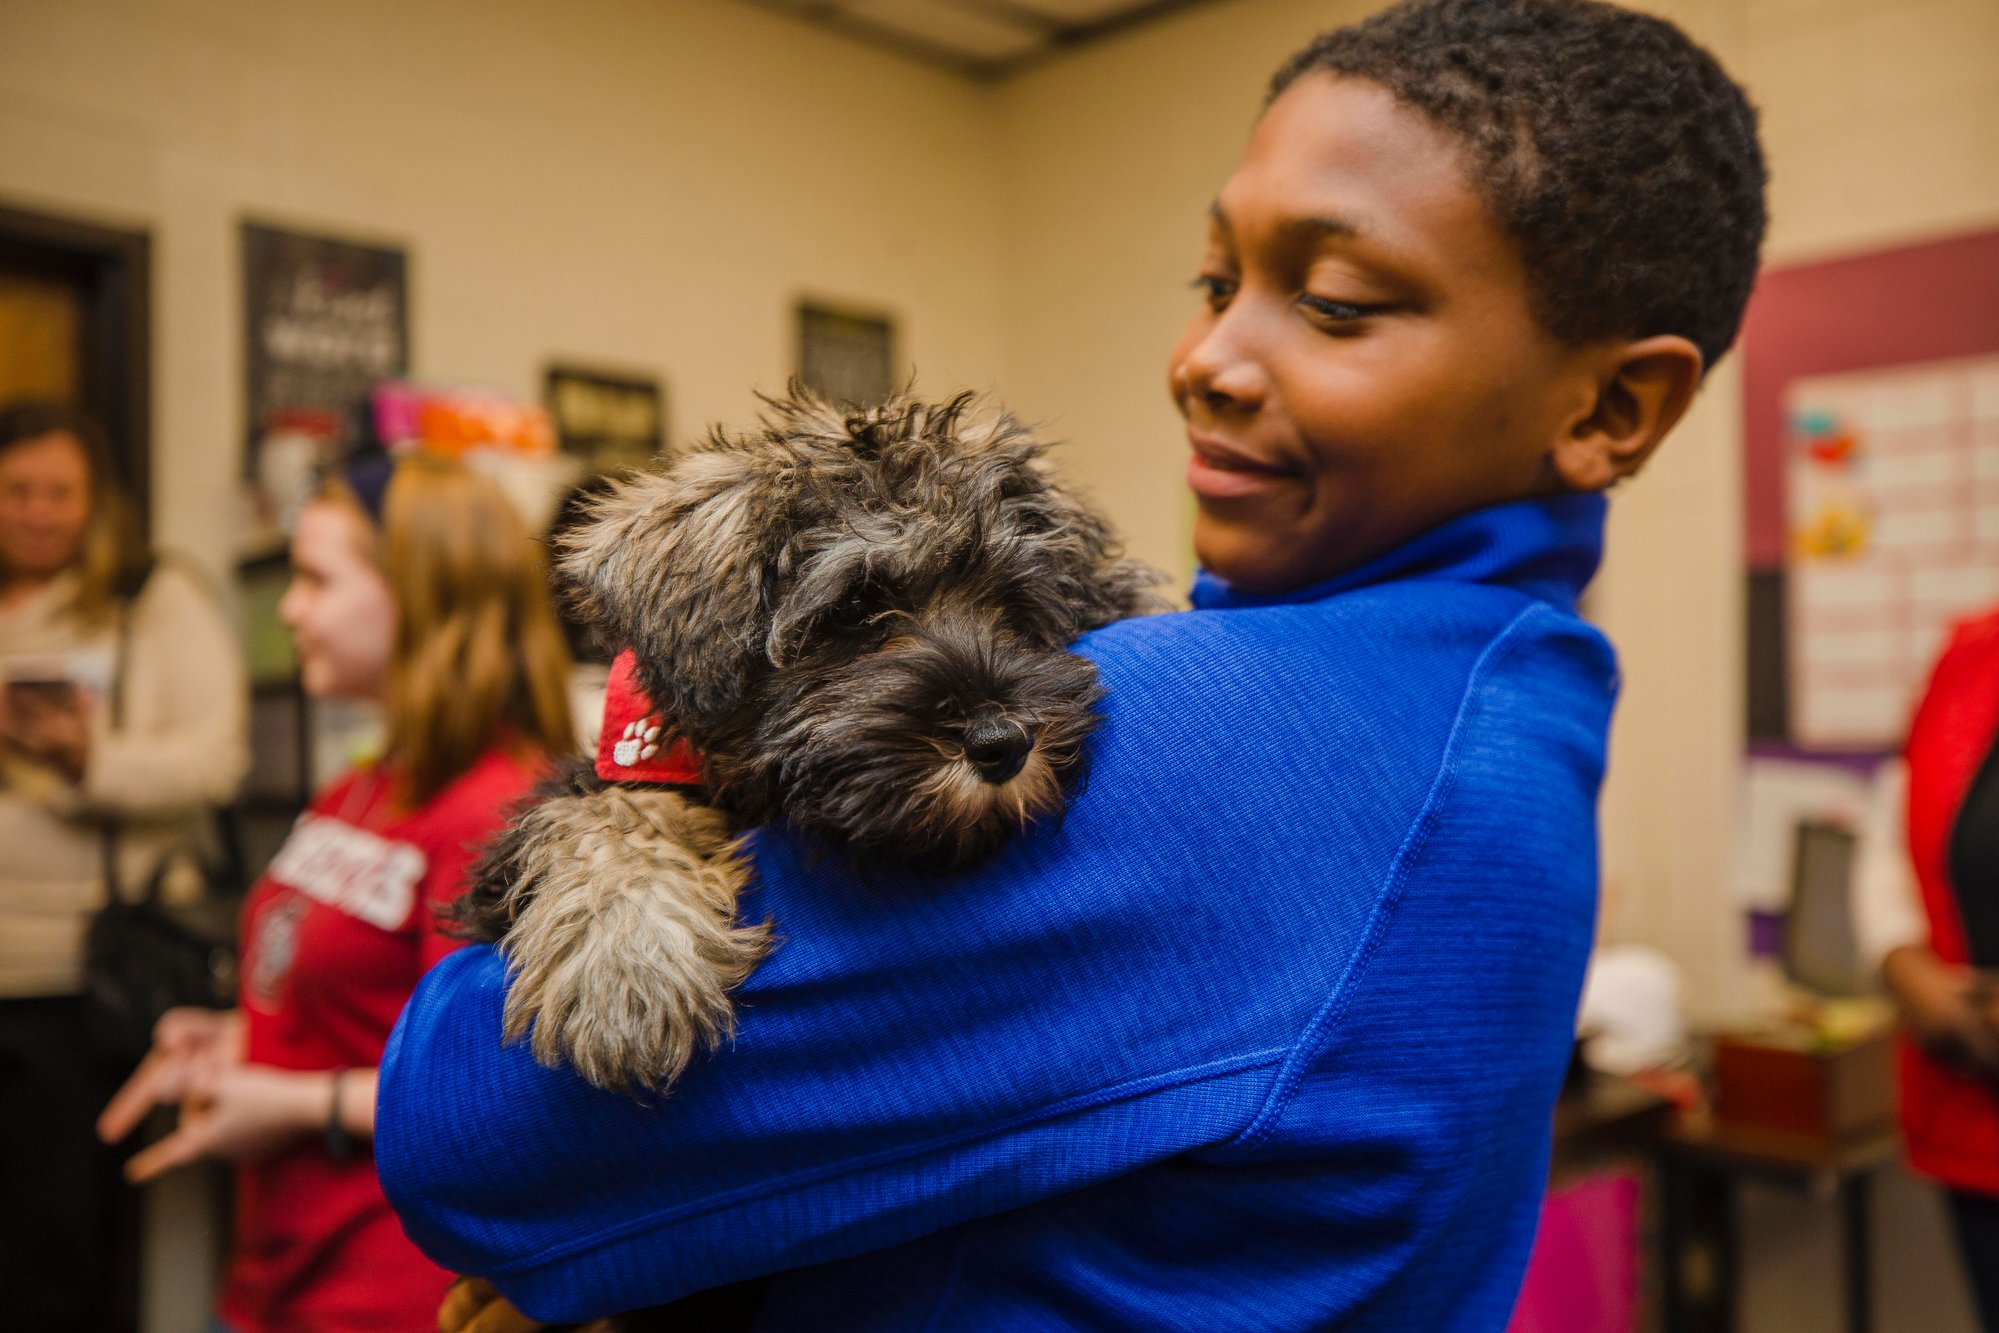 Bantam rests on the shoulder of Samuel Laws, a student in Lisa Sanders's class at Bates Middle School.